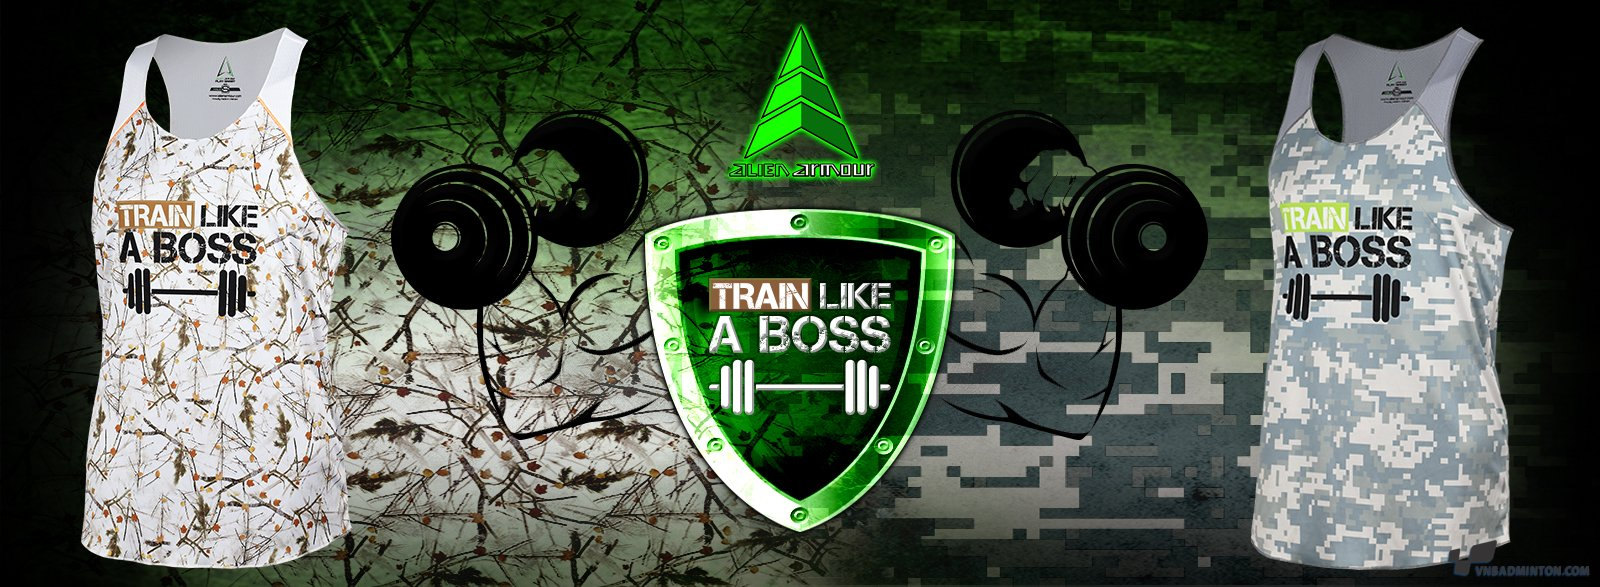 train like a boss.jpg